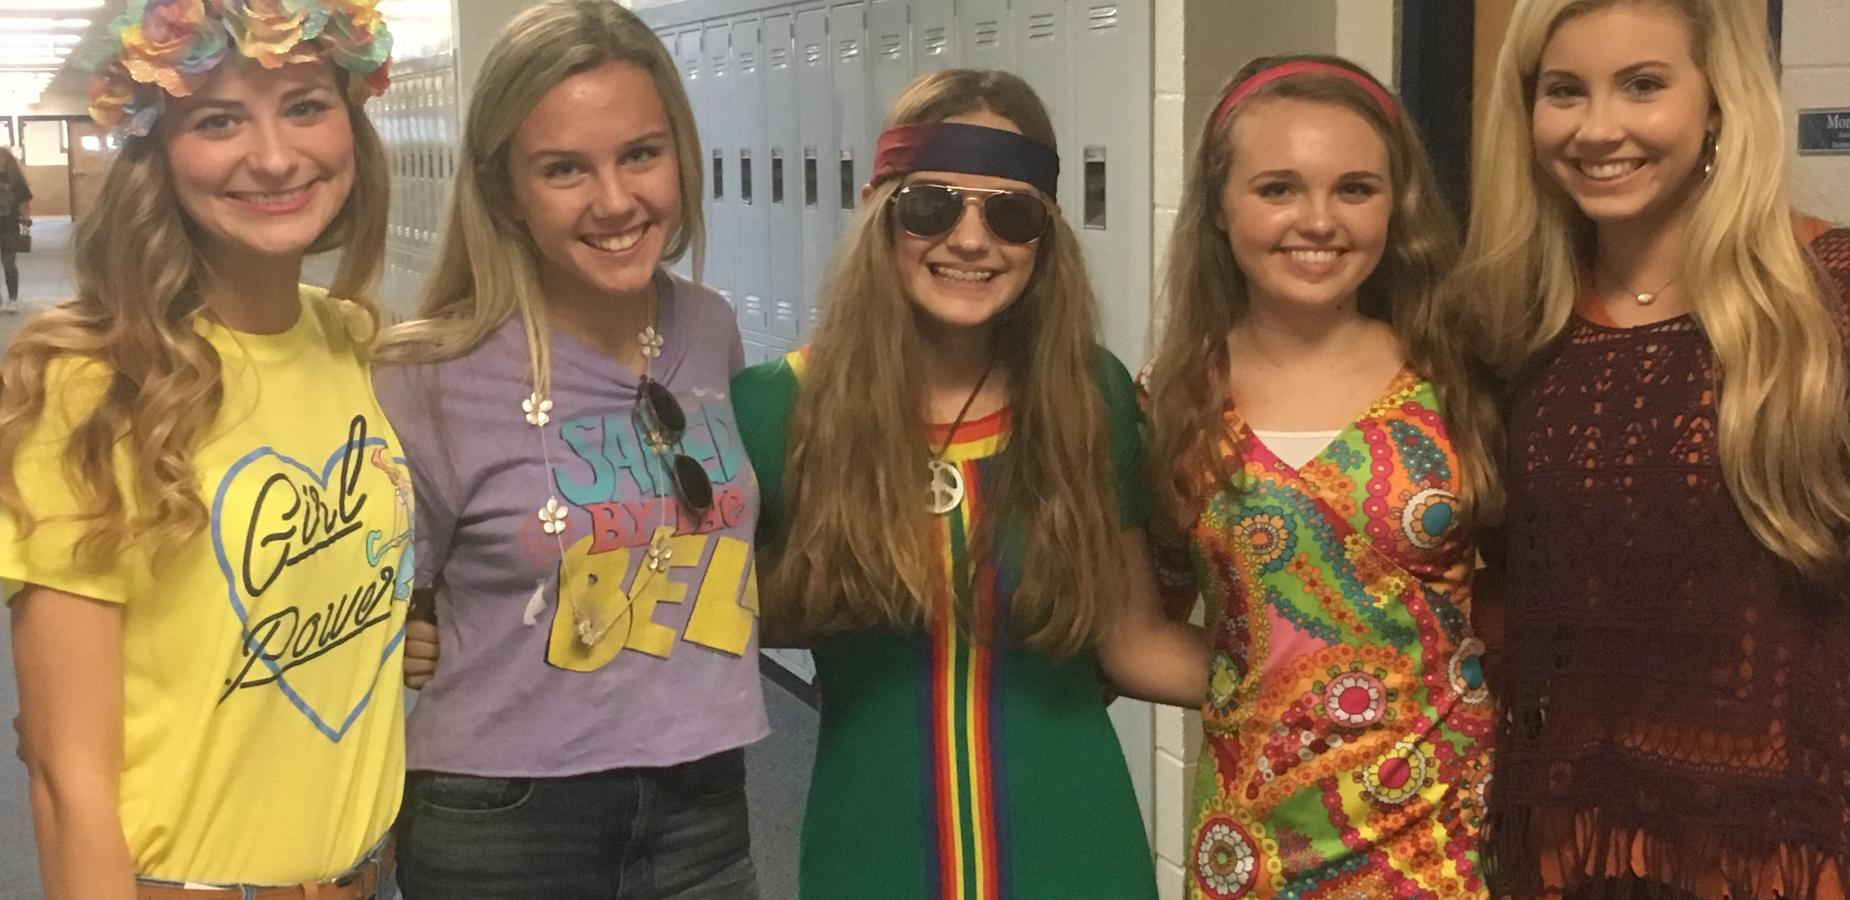 TCHS Students Dressed up for 70's Day